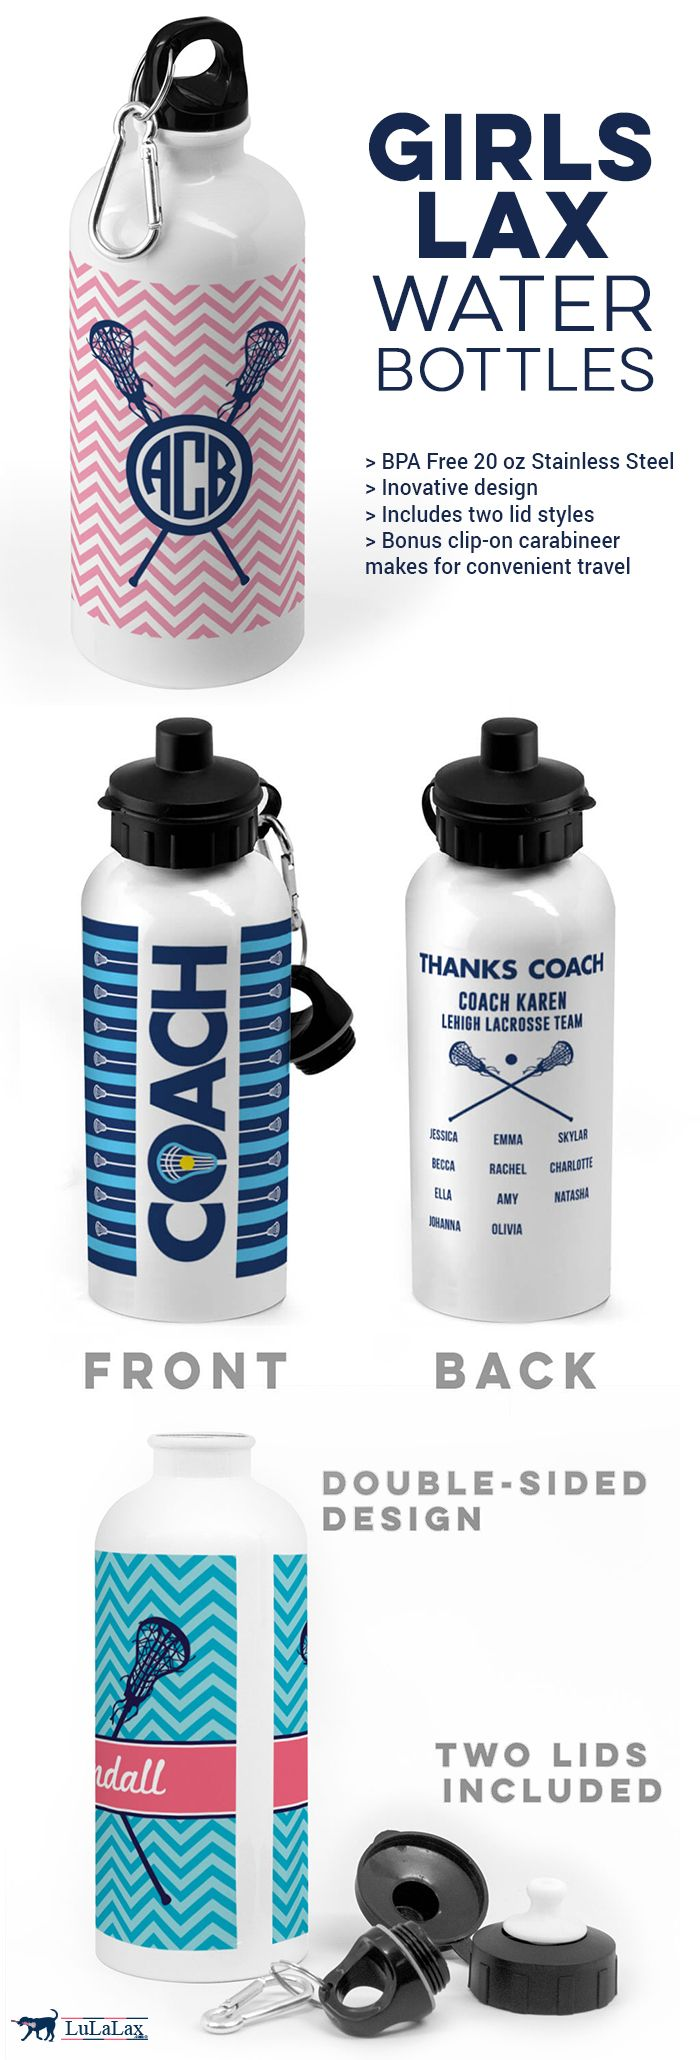 Our girls lacrosse water bottles make great gifts for players, parents and coaches! Choose from dozens of designs, colors, and personalization options!